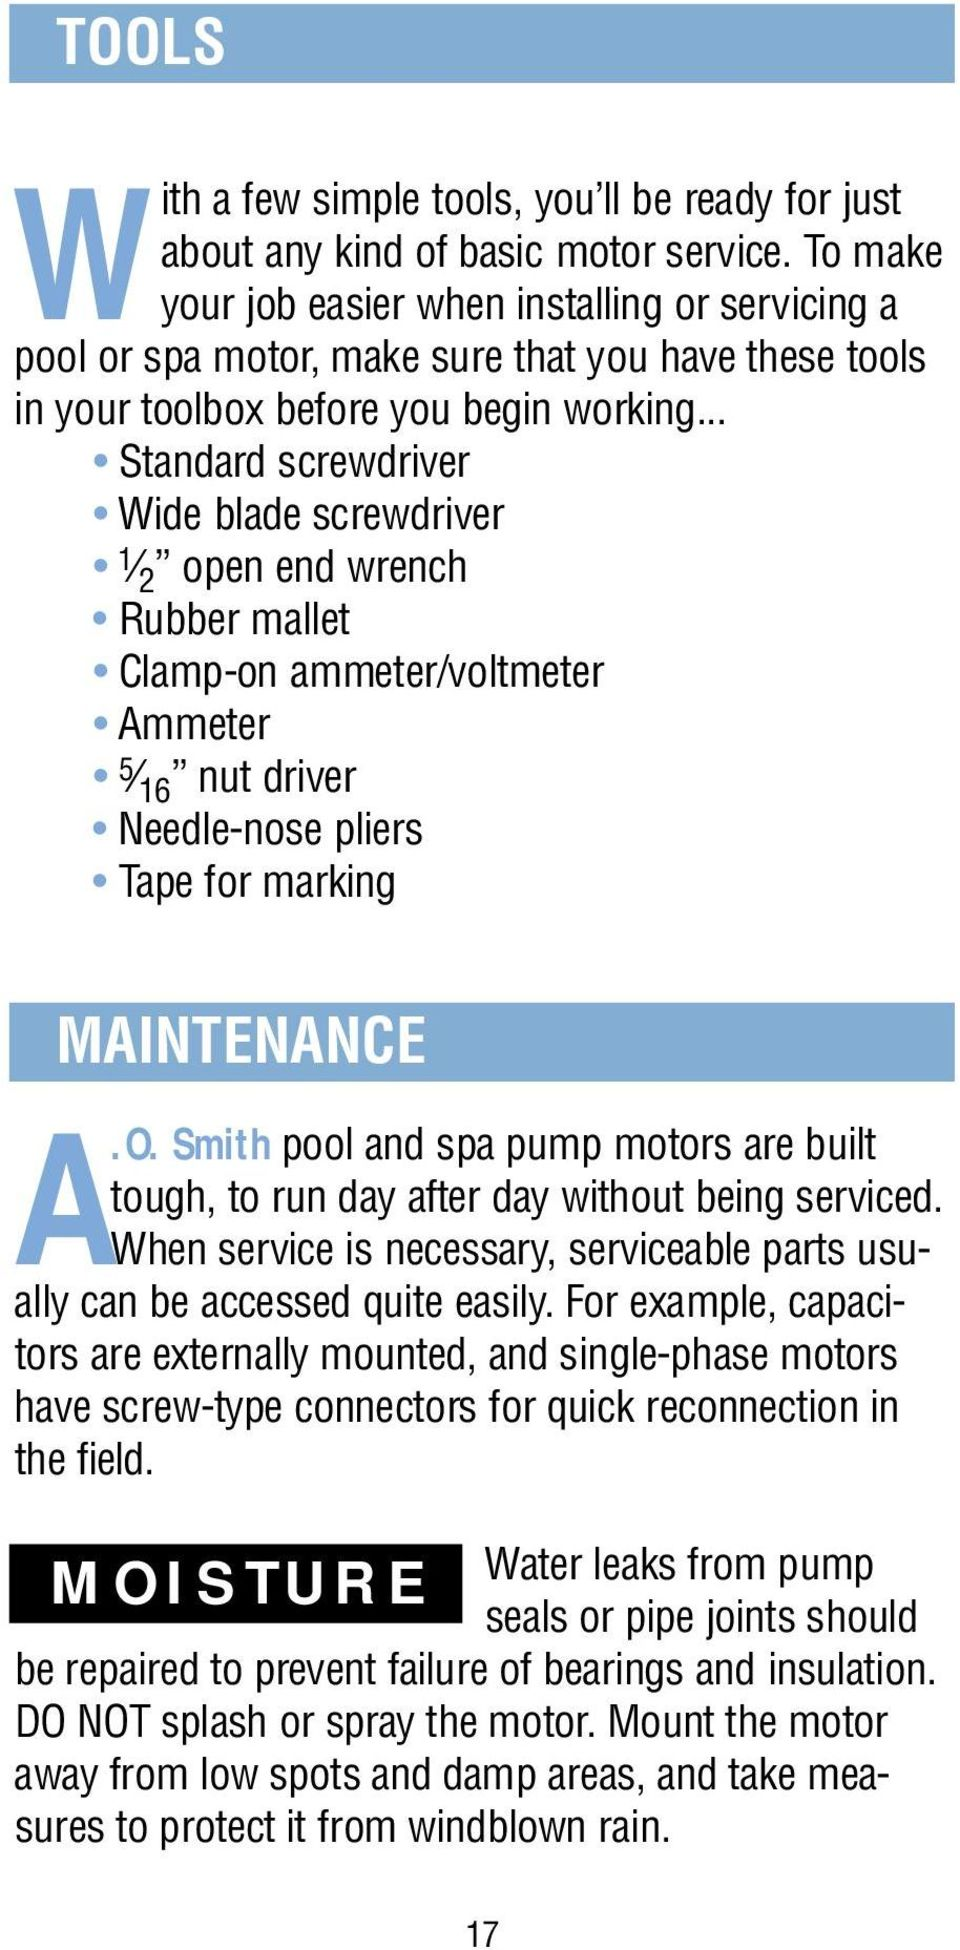 Century Pool Spa Motor Manual Pdf When The Switch Is Open Voltmeter Reads 60 V And It S T A N D Rd Scre W R I E Wide Blade 1 2 End Wre